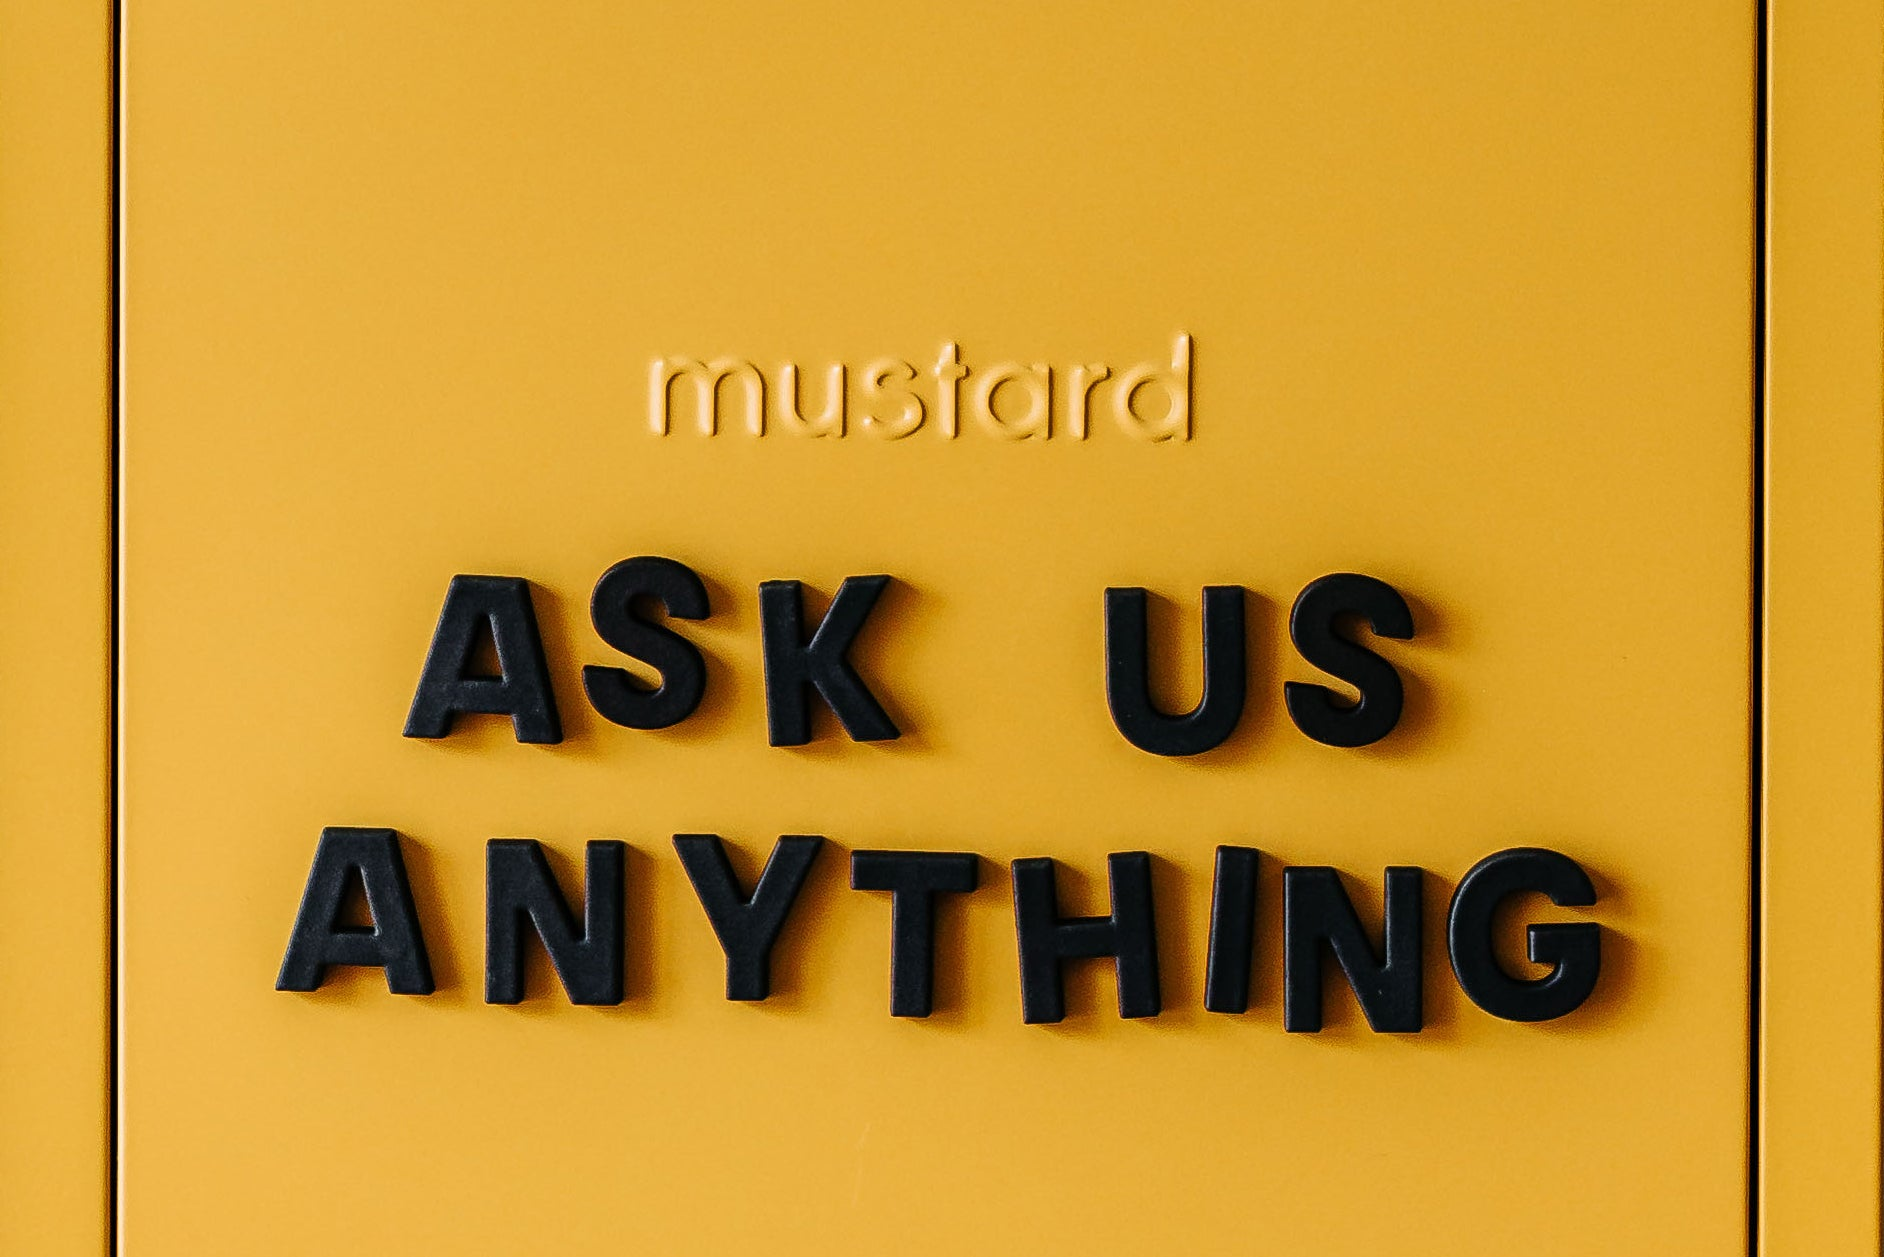 Mustard Made FAQ frequently asked questions